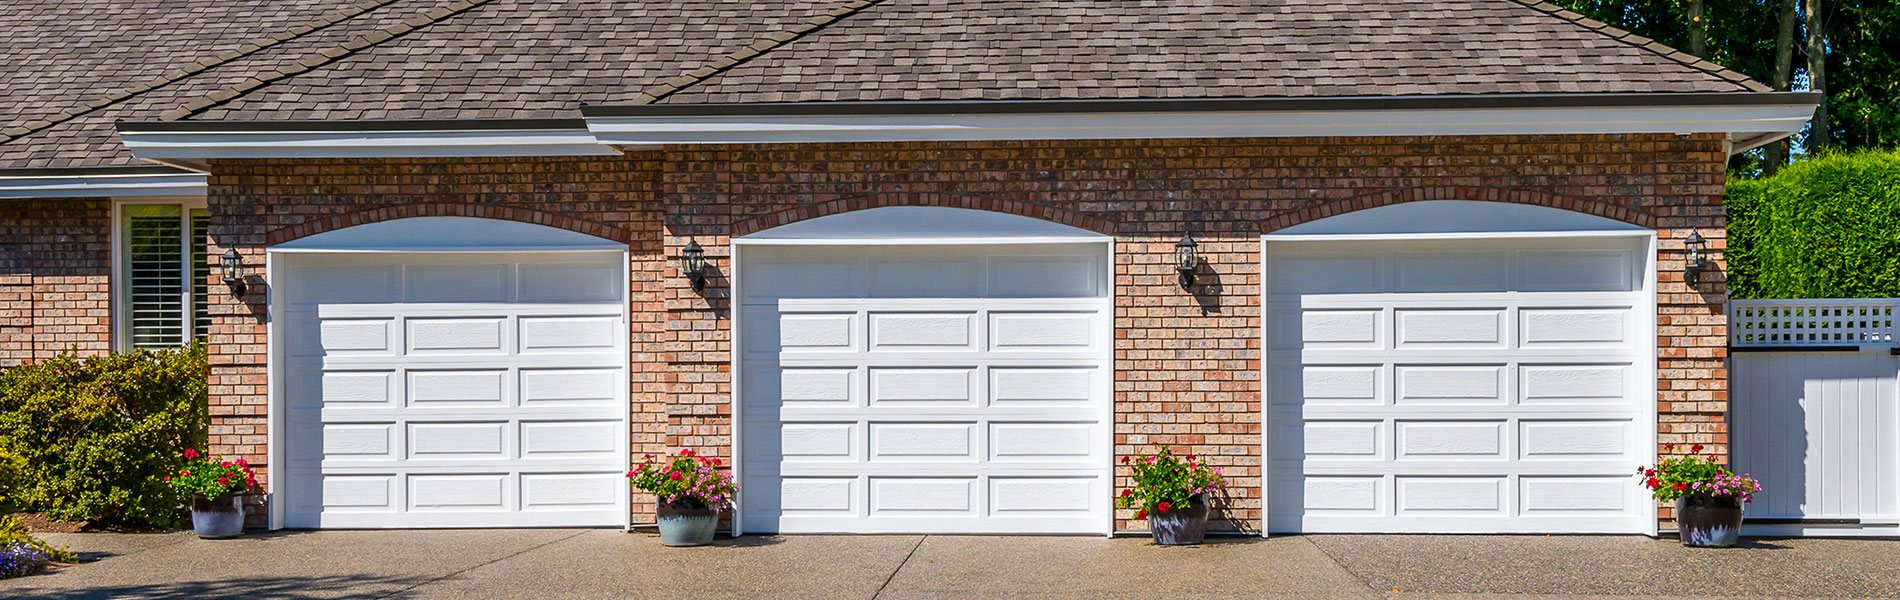 Galaxy Garage Door Service, San Antonio, TX 210-245-6655